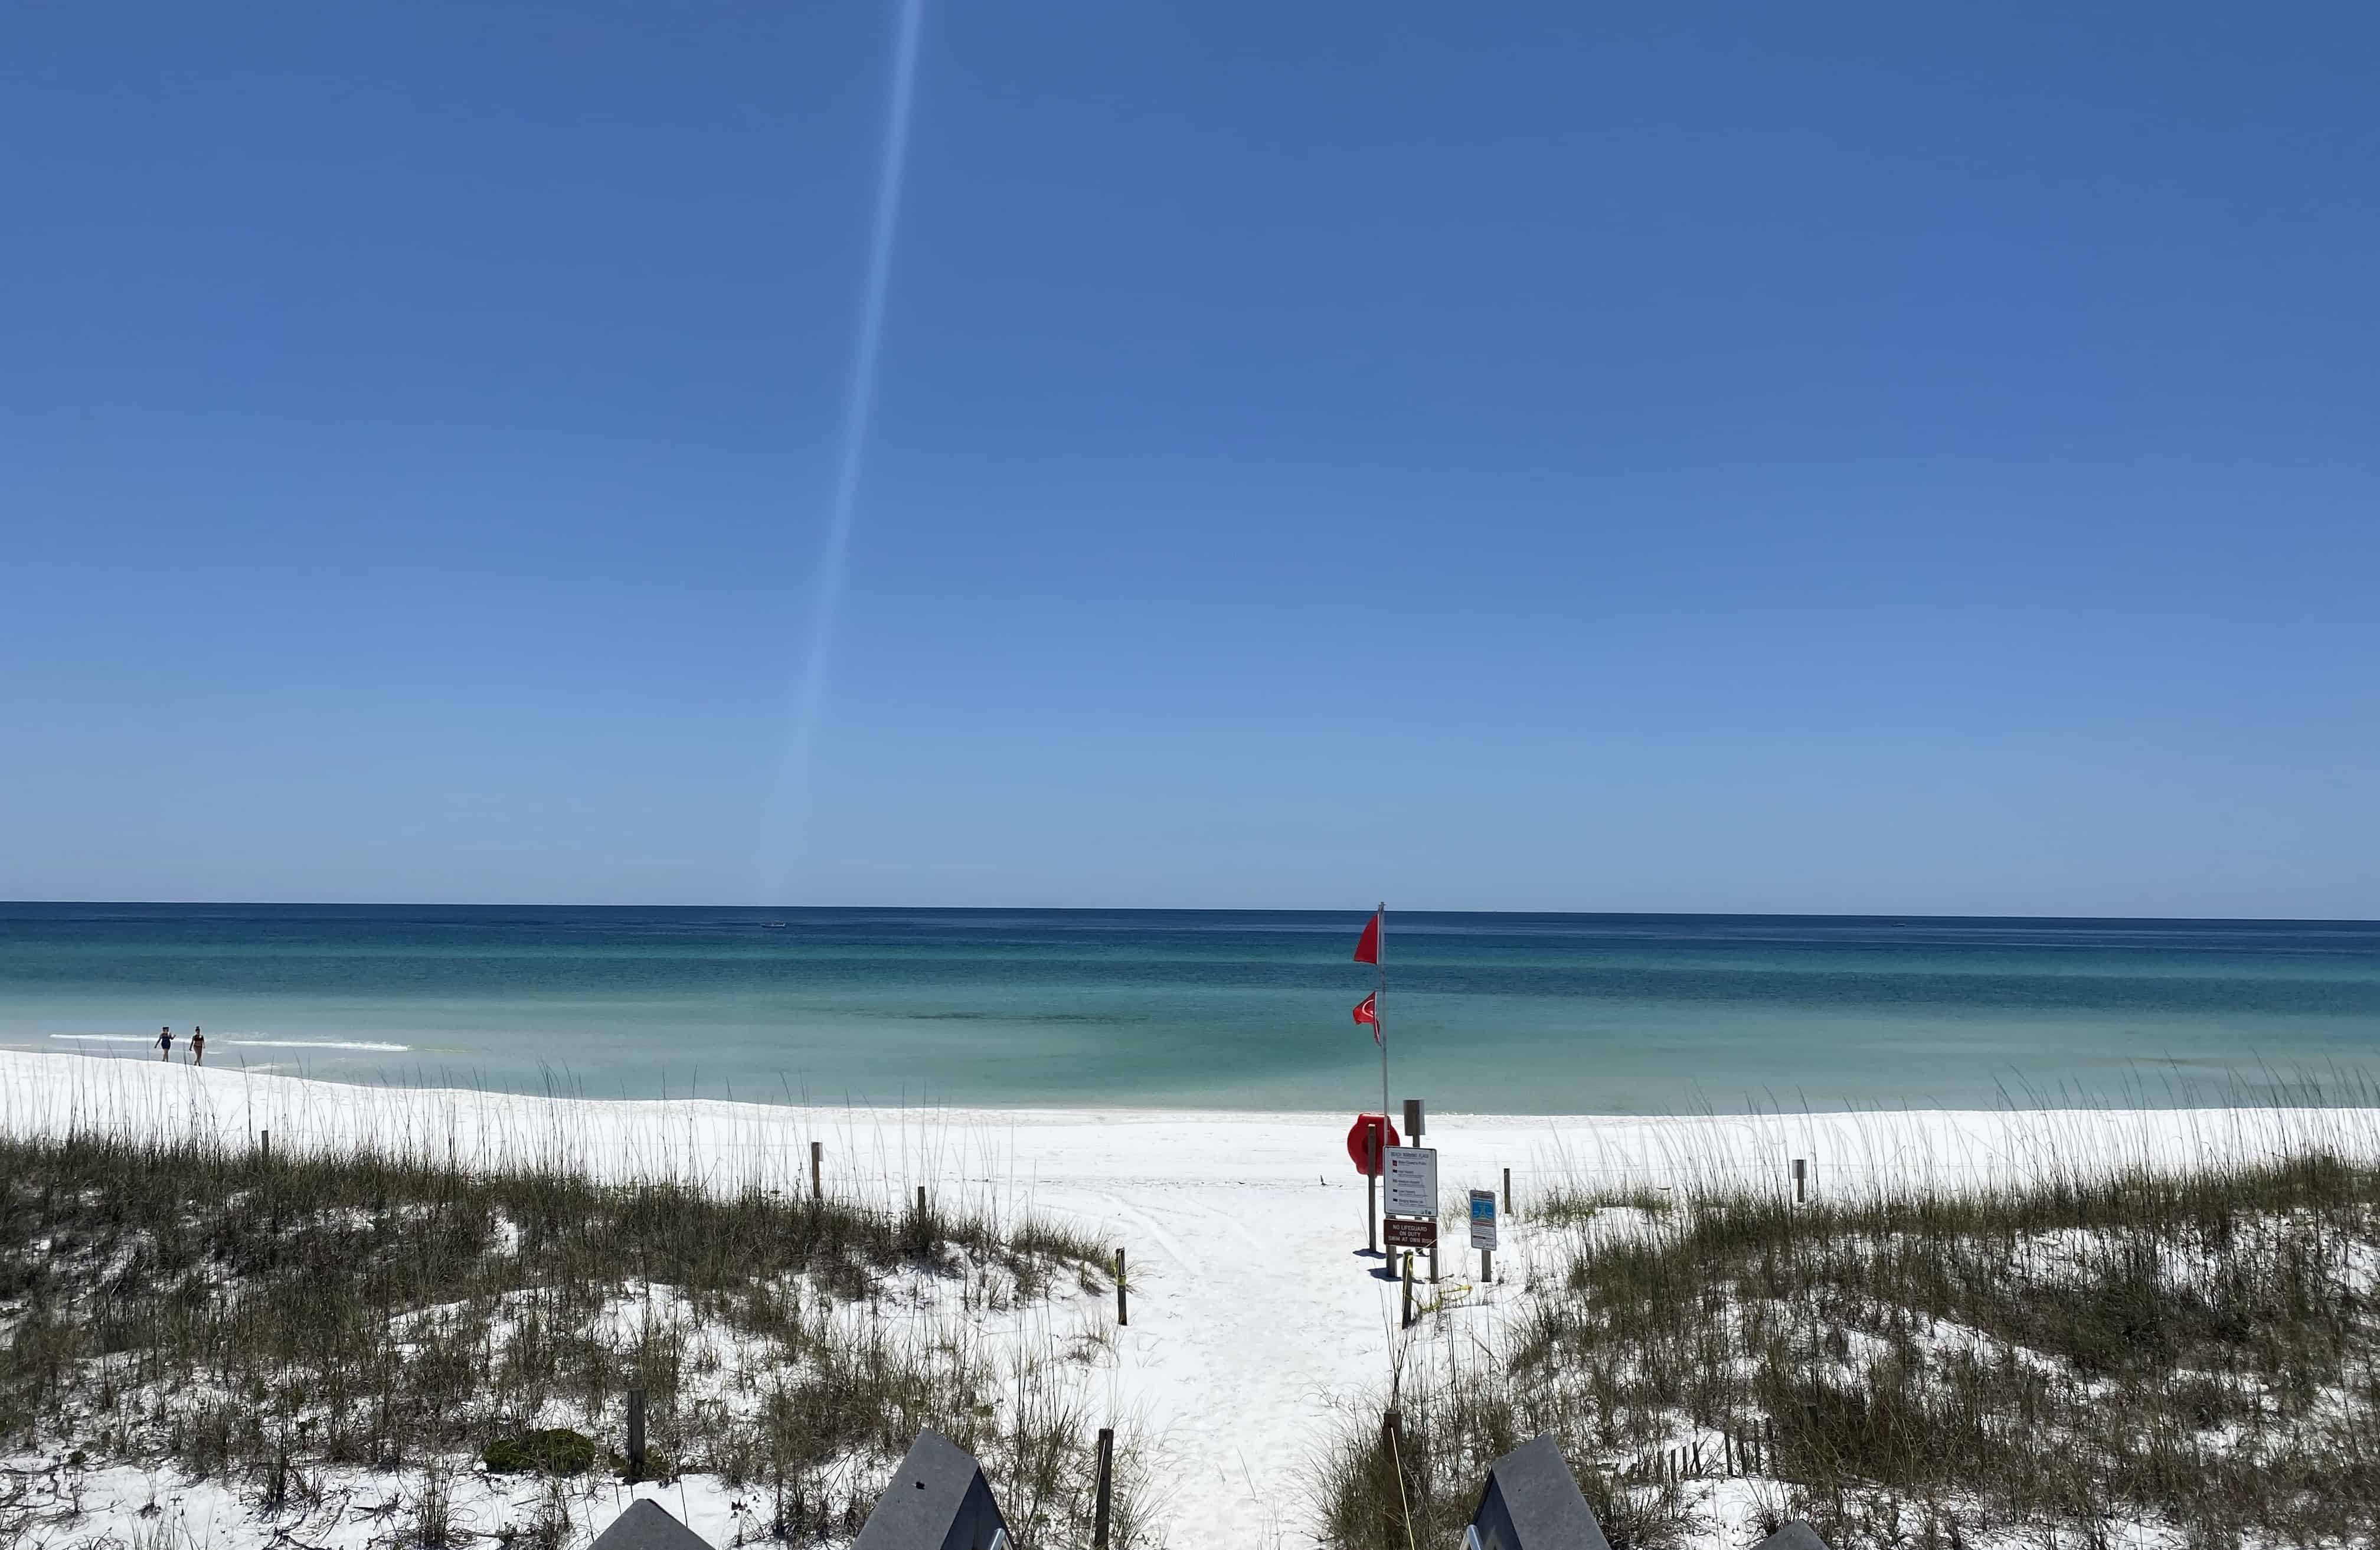 the beaches of Navarre, FL